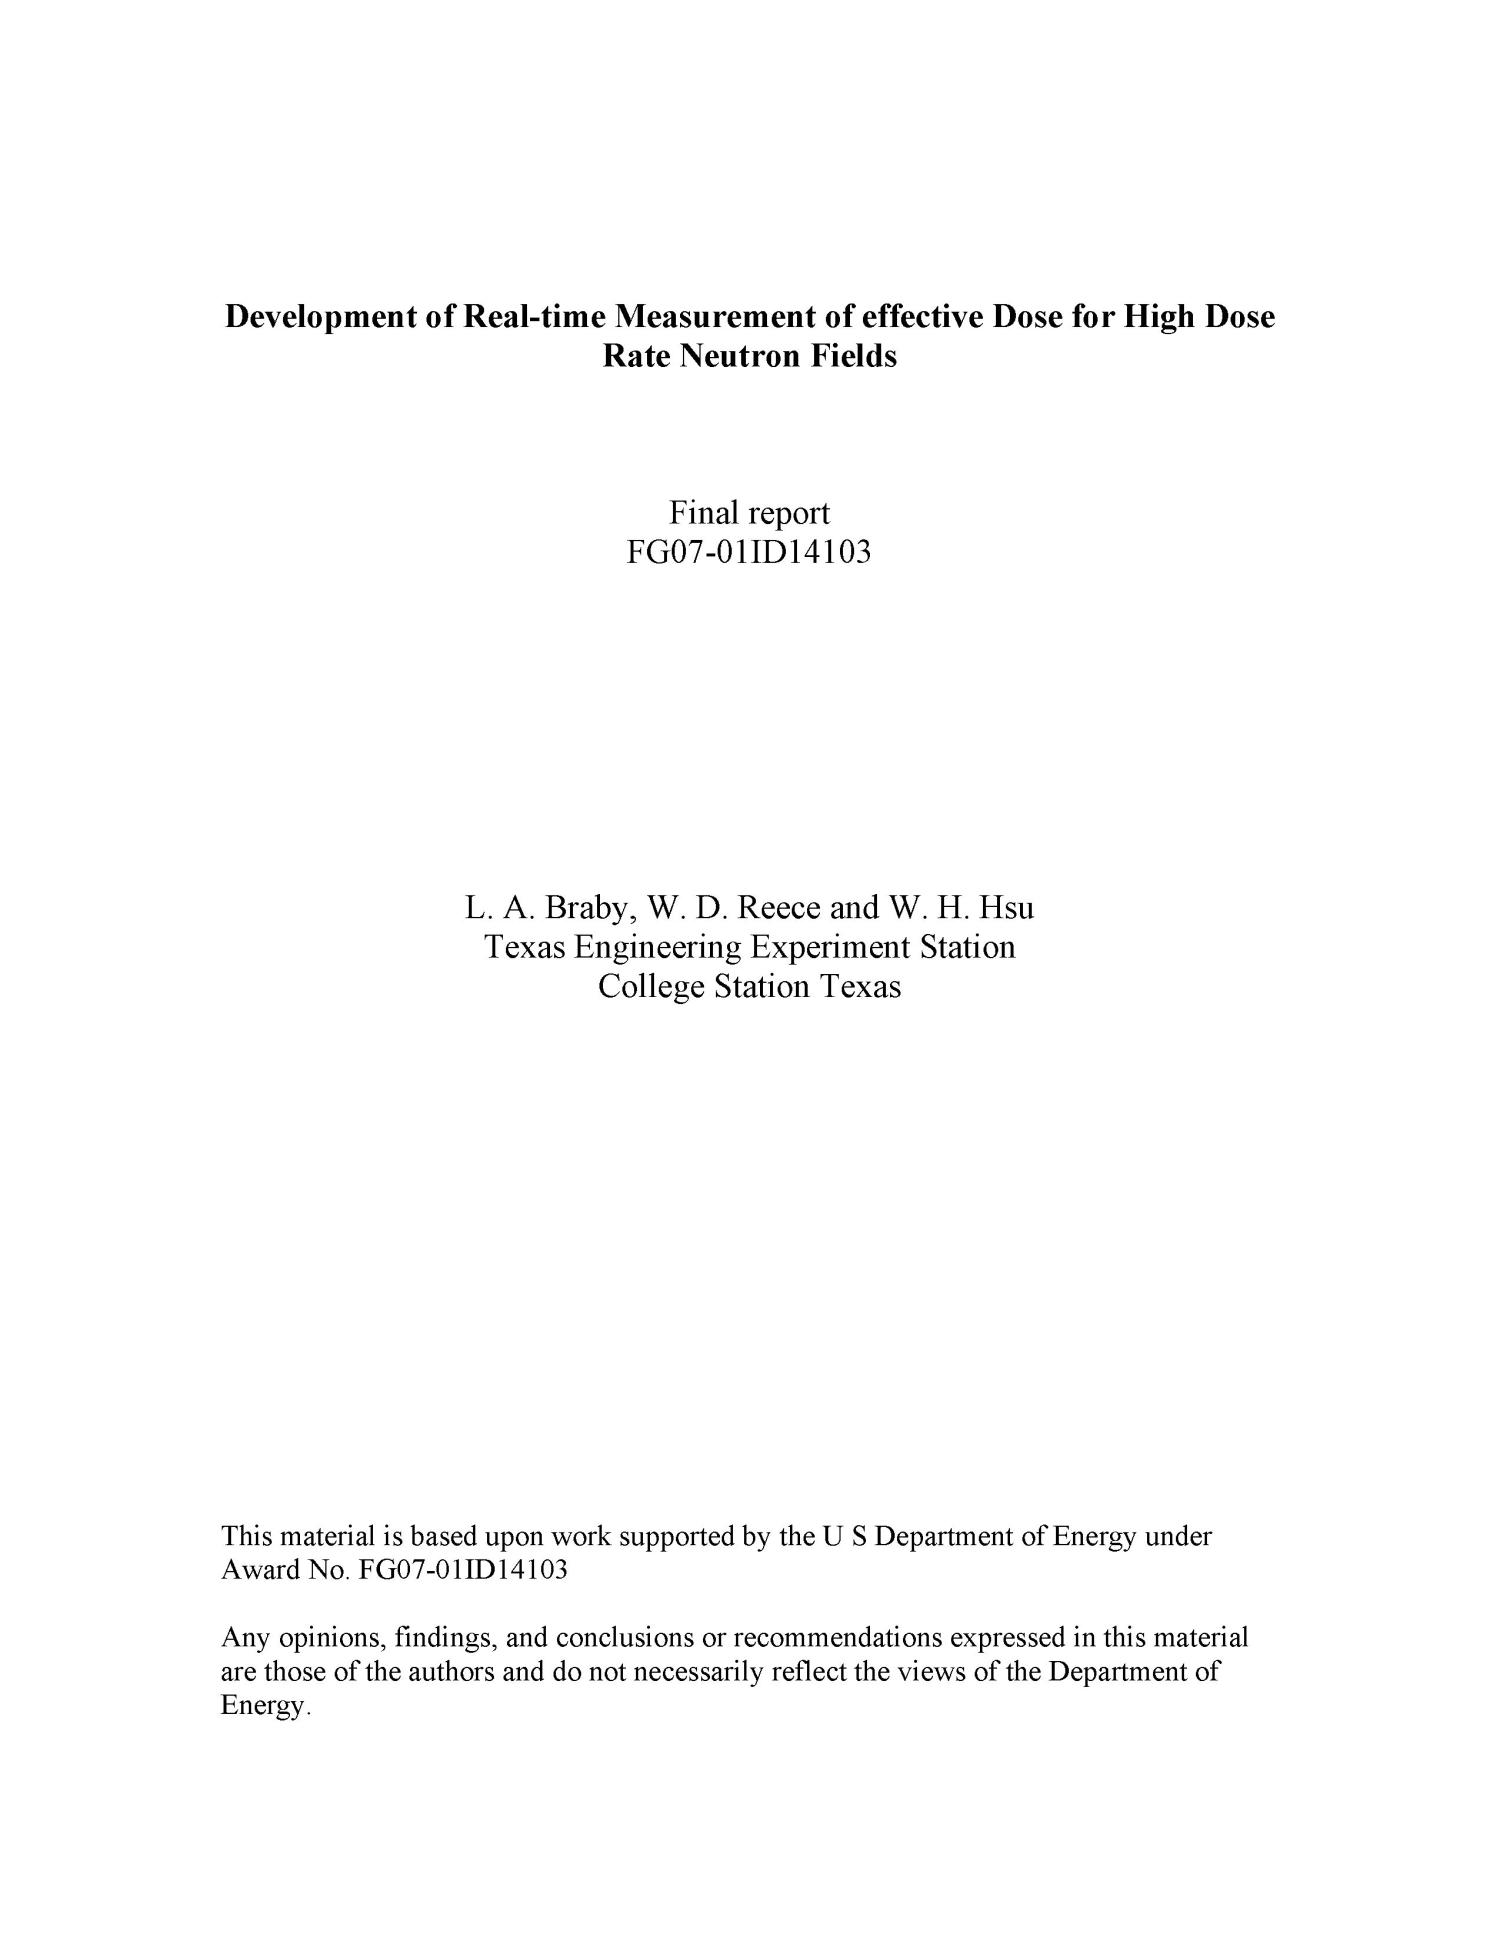 Development of Real-Time Measurement of Effective Dose for High Dose Rate Neutron Fields                                                                                                      [Sequence #]: 1 of 6